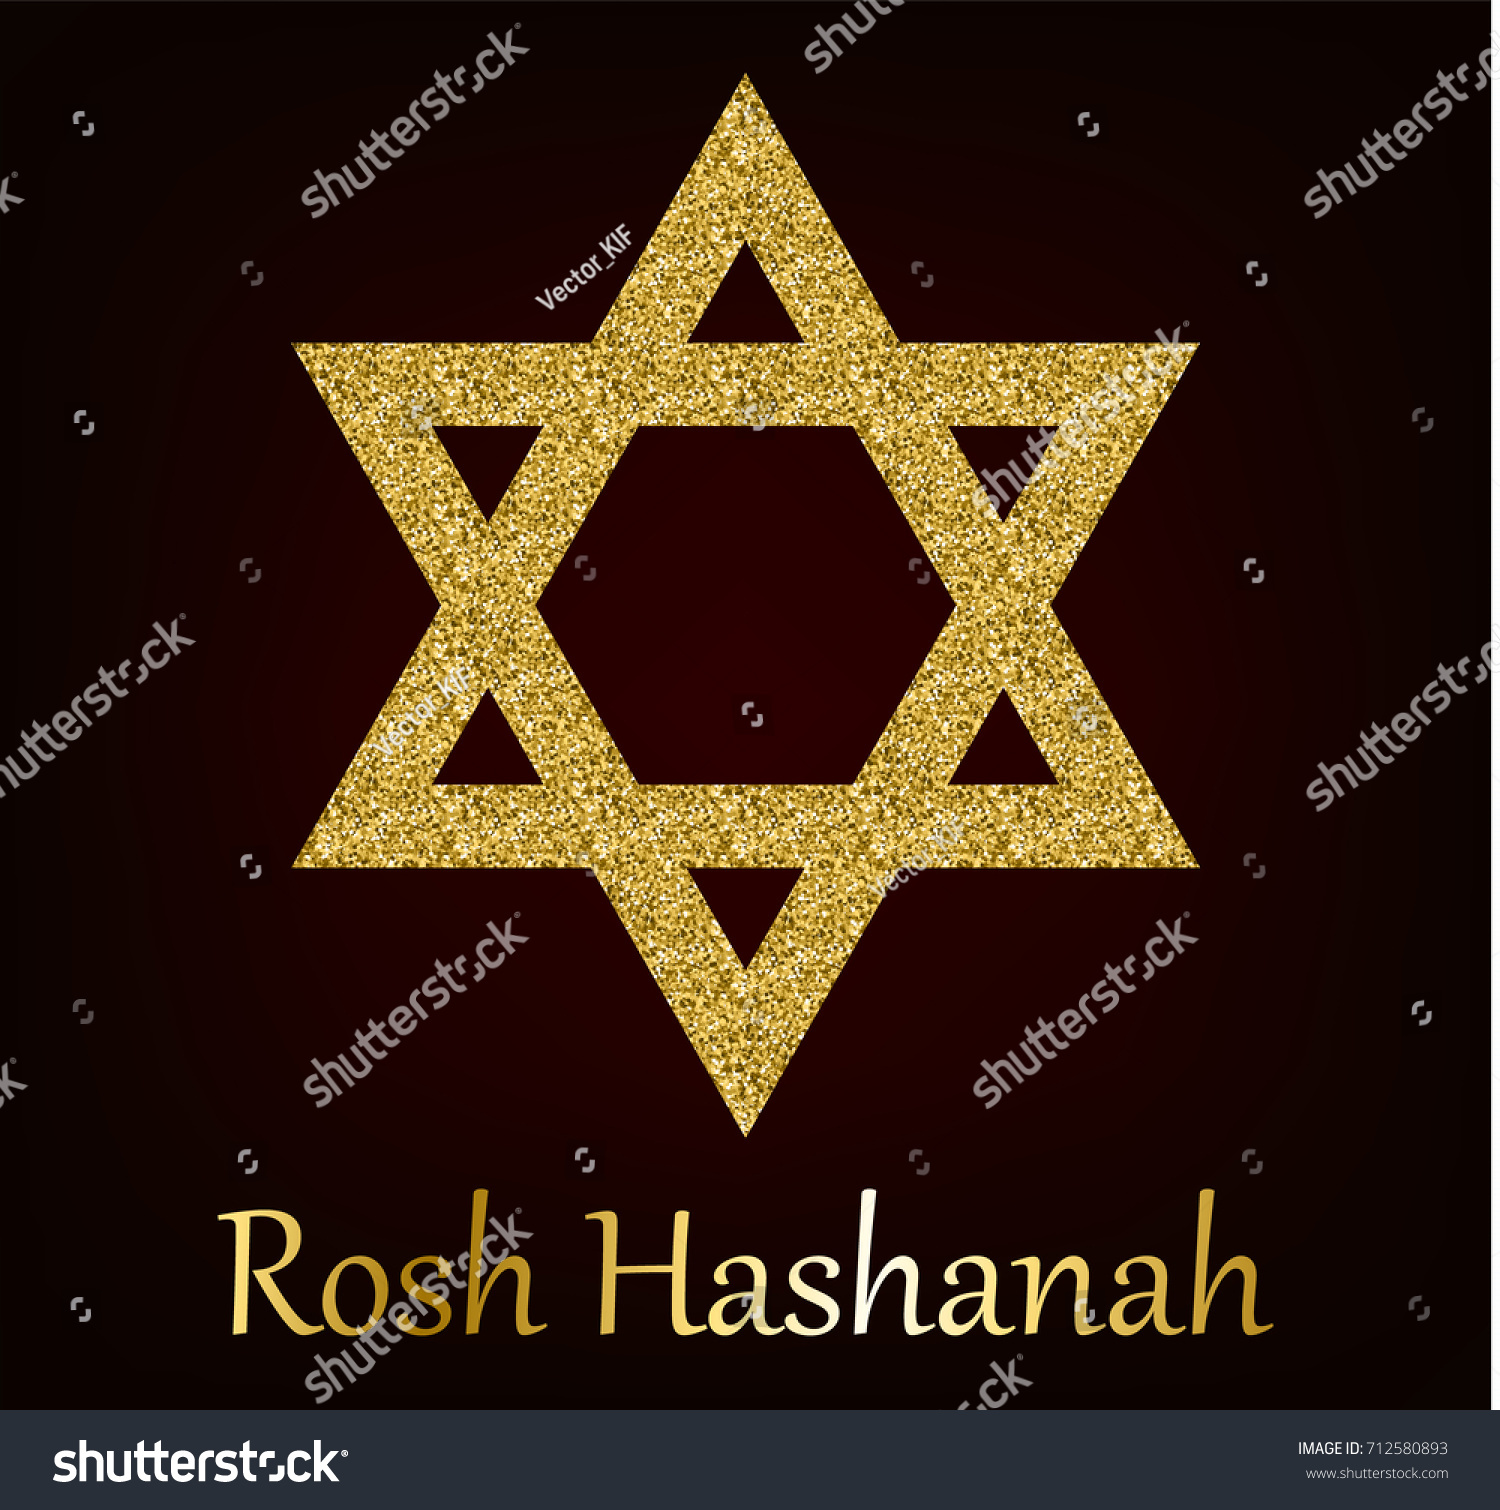 Rosh Hashanah Greeting Card Star David Stock Vector Royalty Free